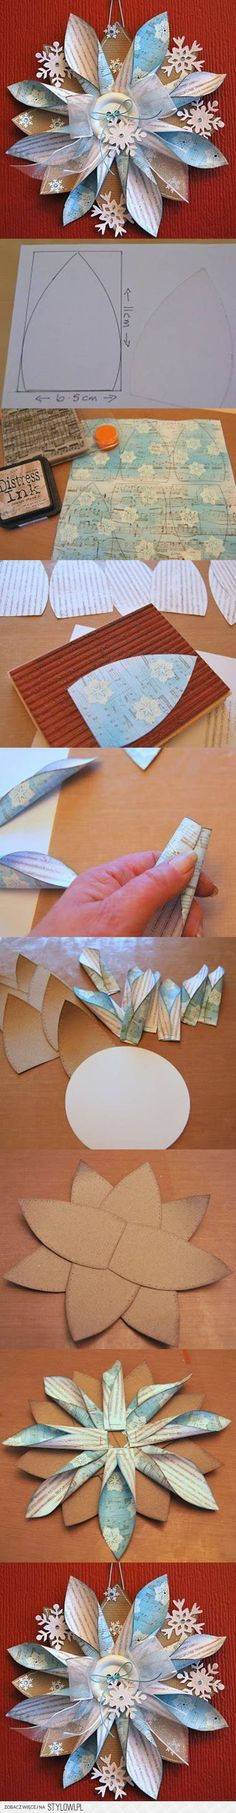 DIY Paper Flower Ornaments DIY Projects | UsefulDIY.com